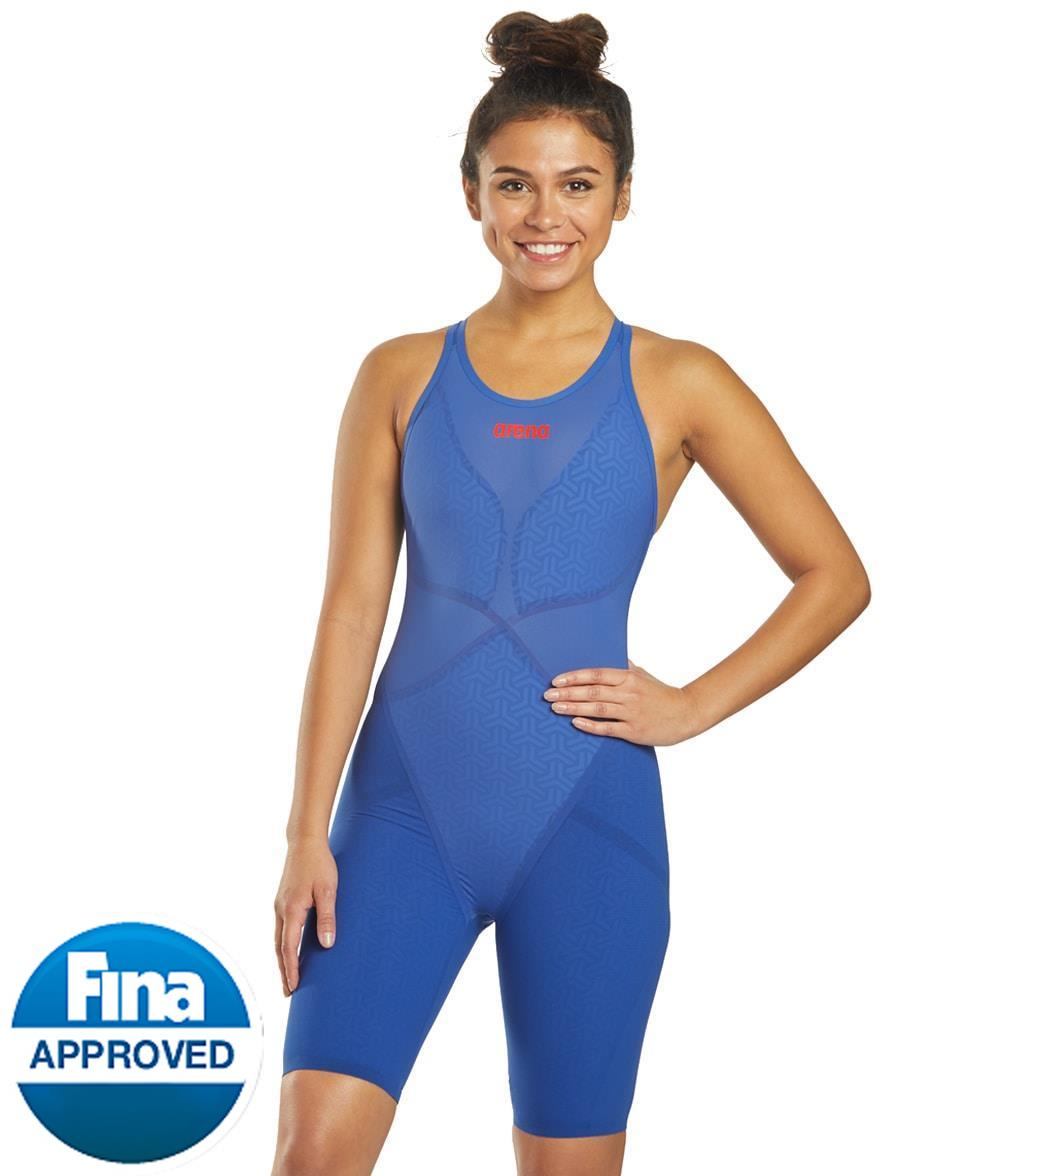 Arena Women's Powerskin Carbon Glide Backstroke Tech Suit Swimsuit